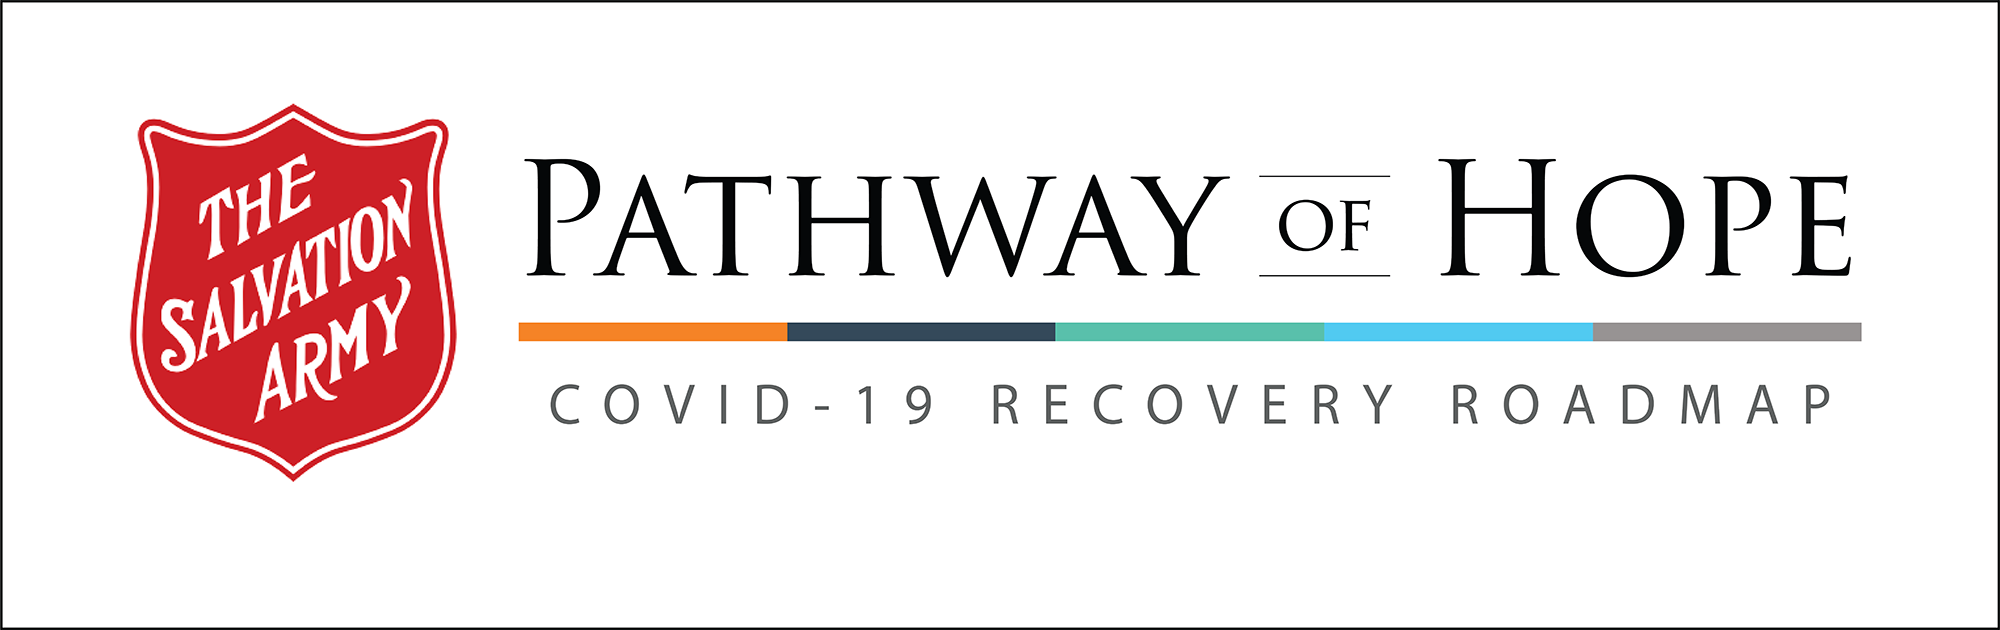 Pathway of Hope COVID-19 Recovery Roadmap